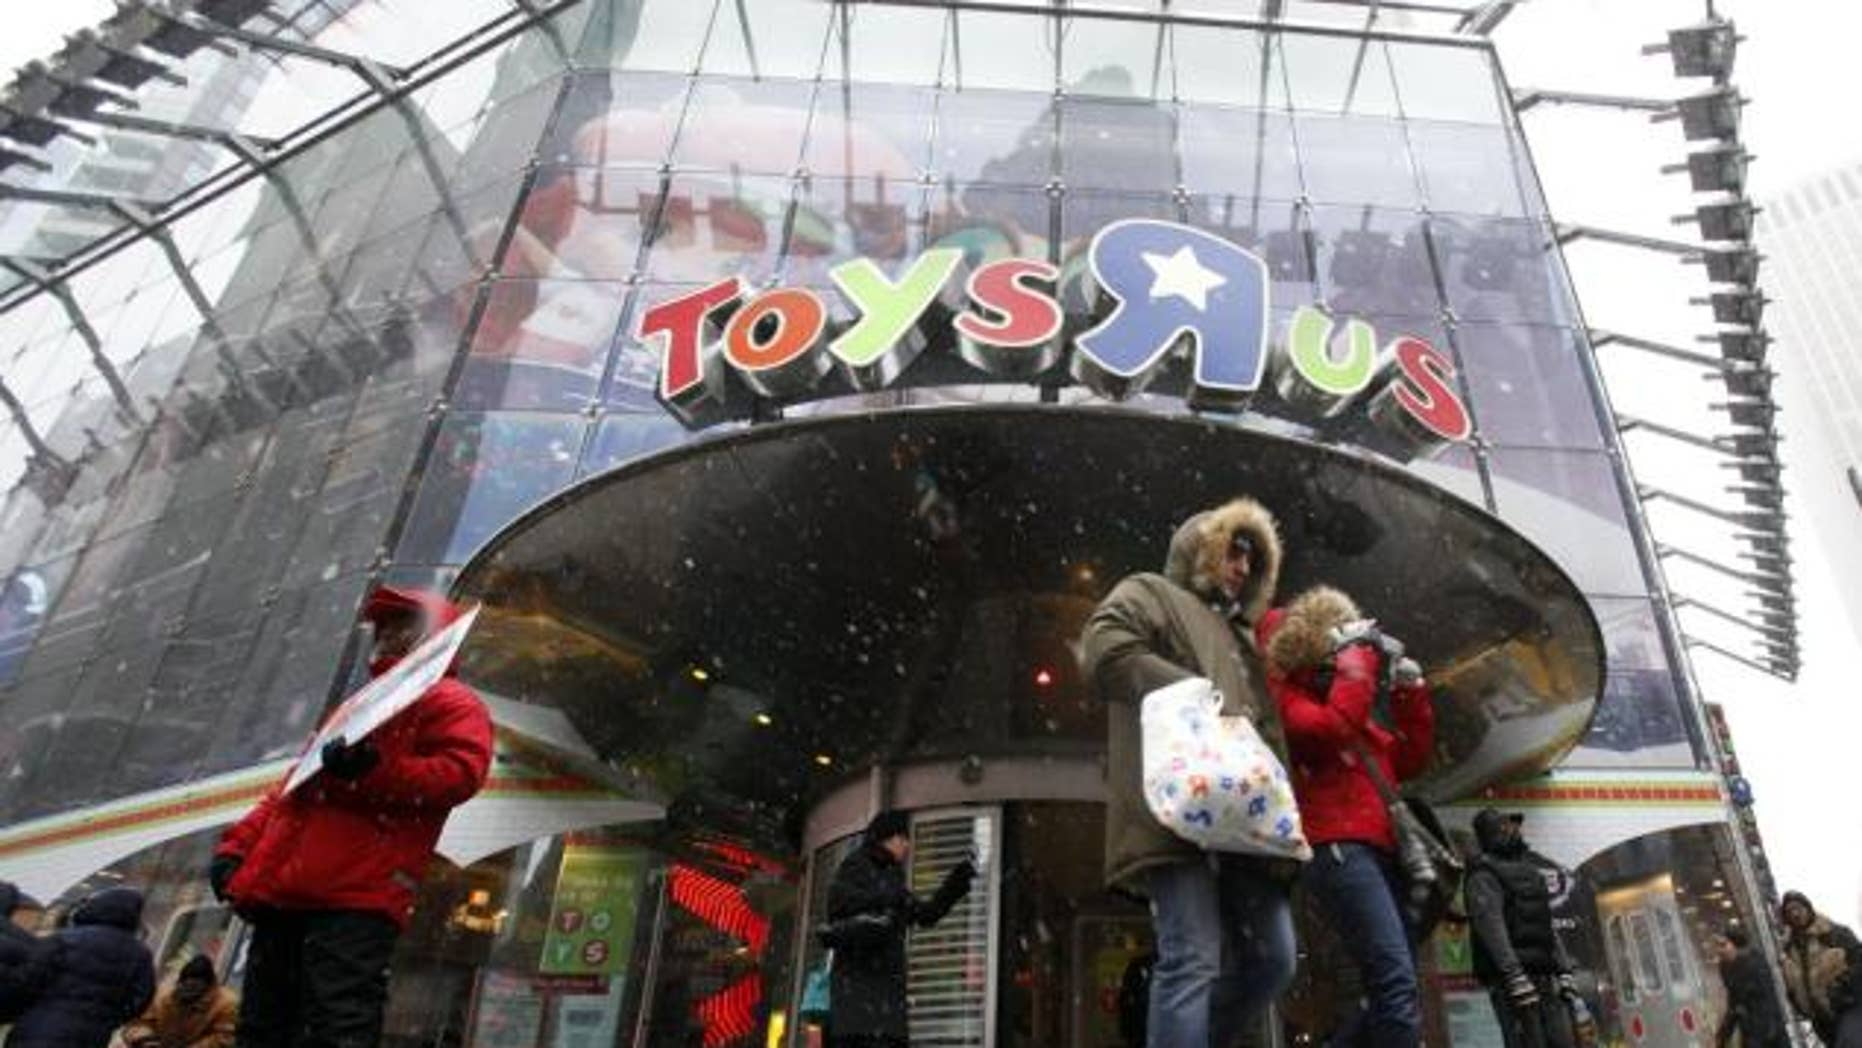 The Toys 'R' Us Times Square location has been open since 2001.